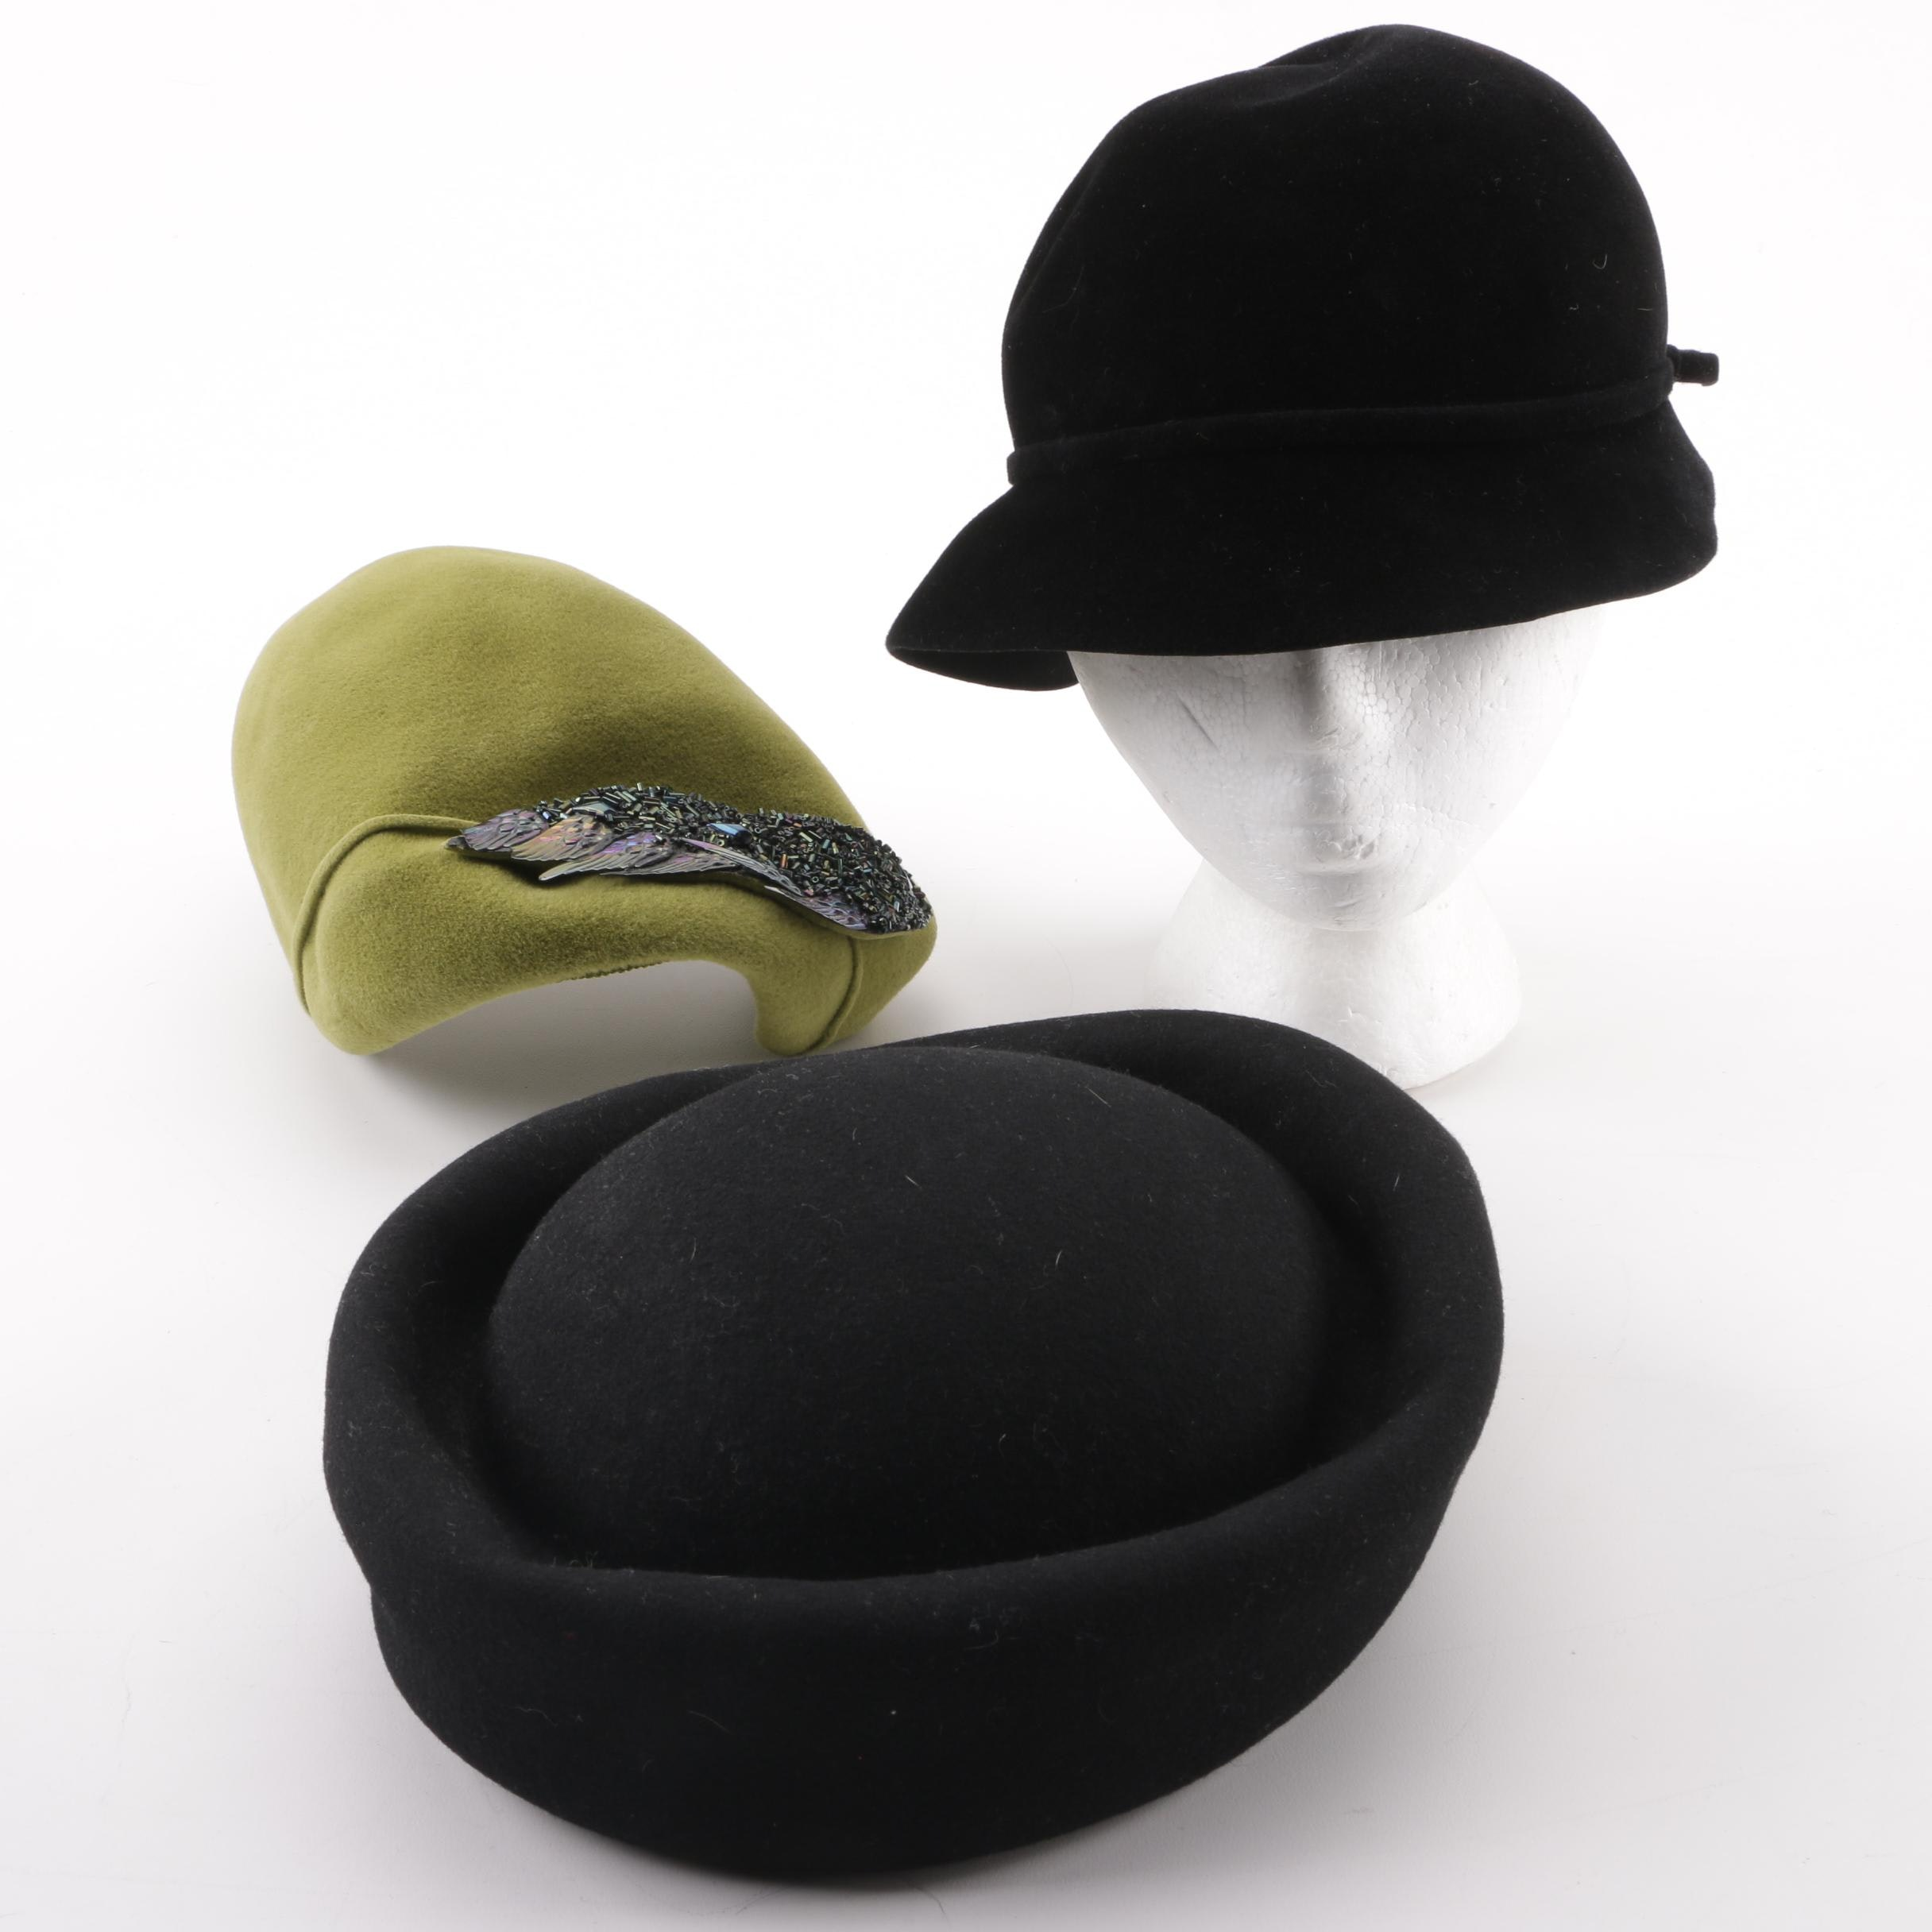 Peachbloom Velour, Ginza Oriental Tokyo and the J.L.Hudson Co. Hats